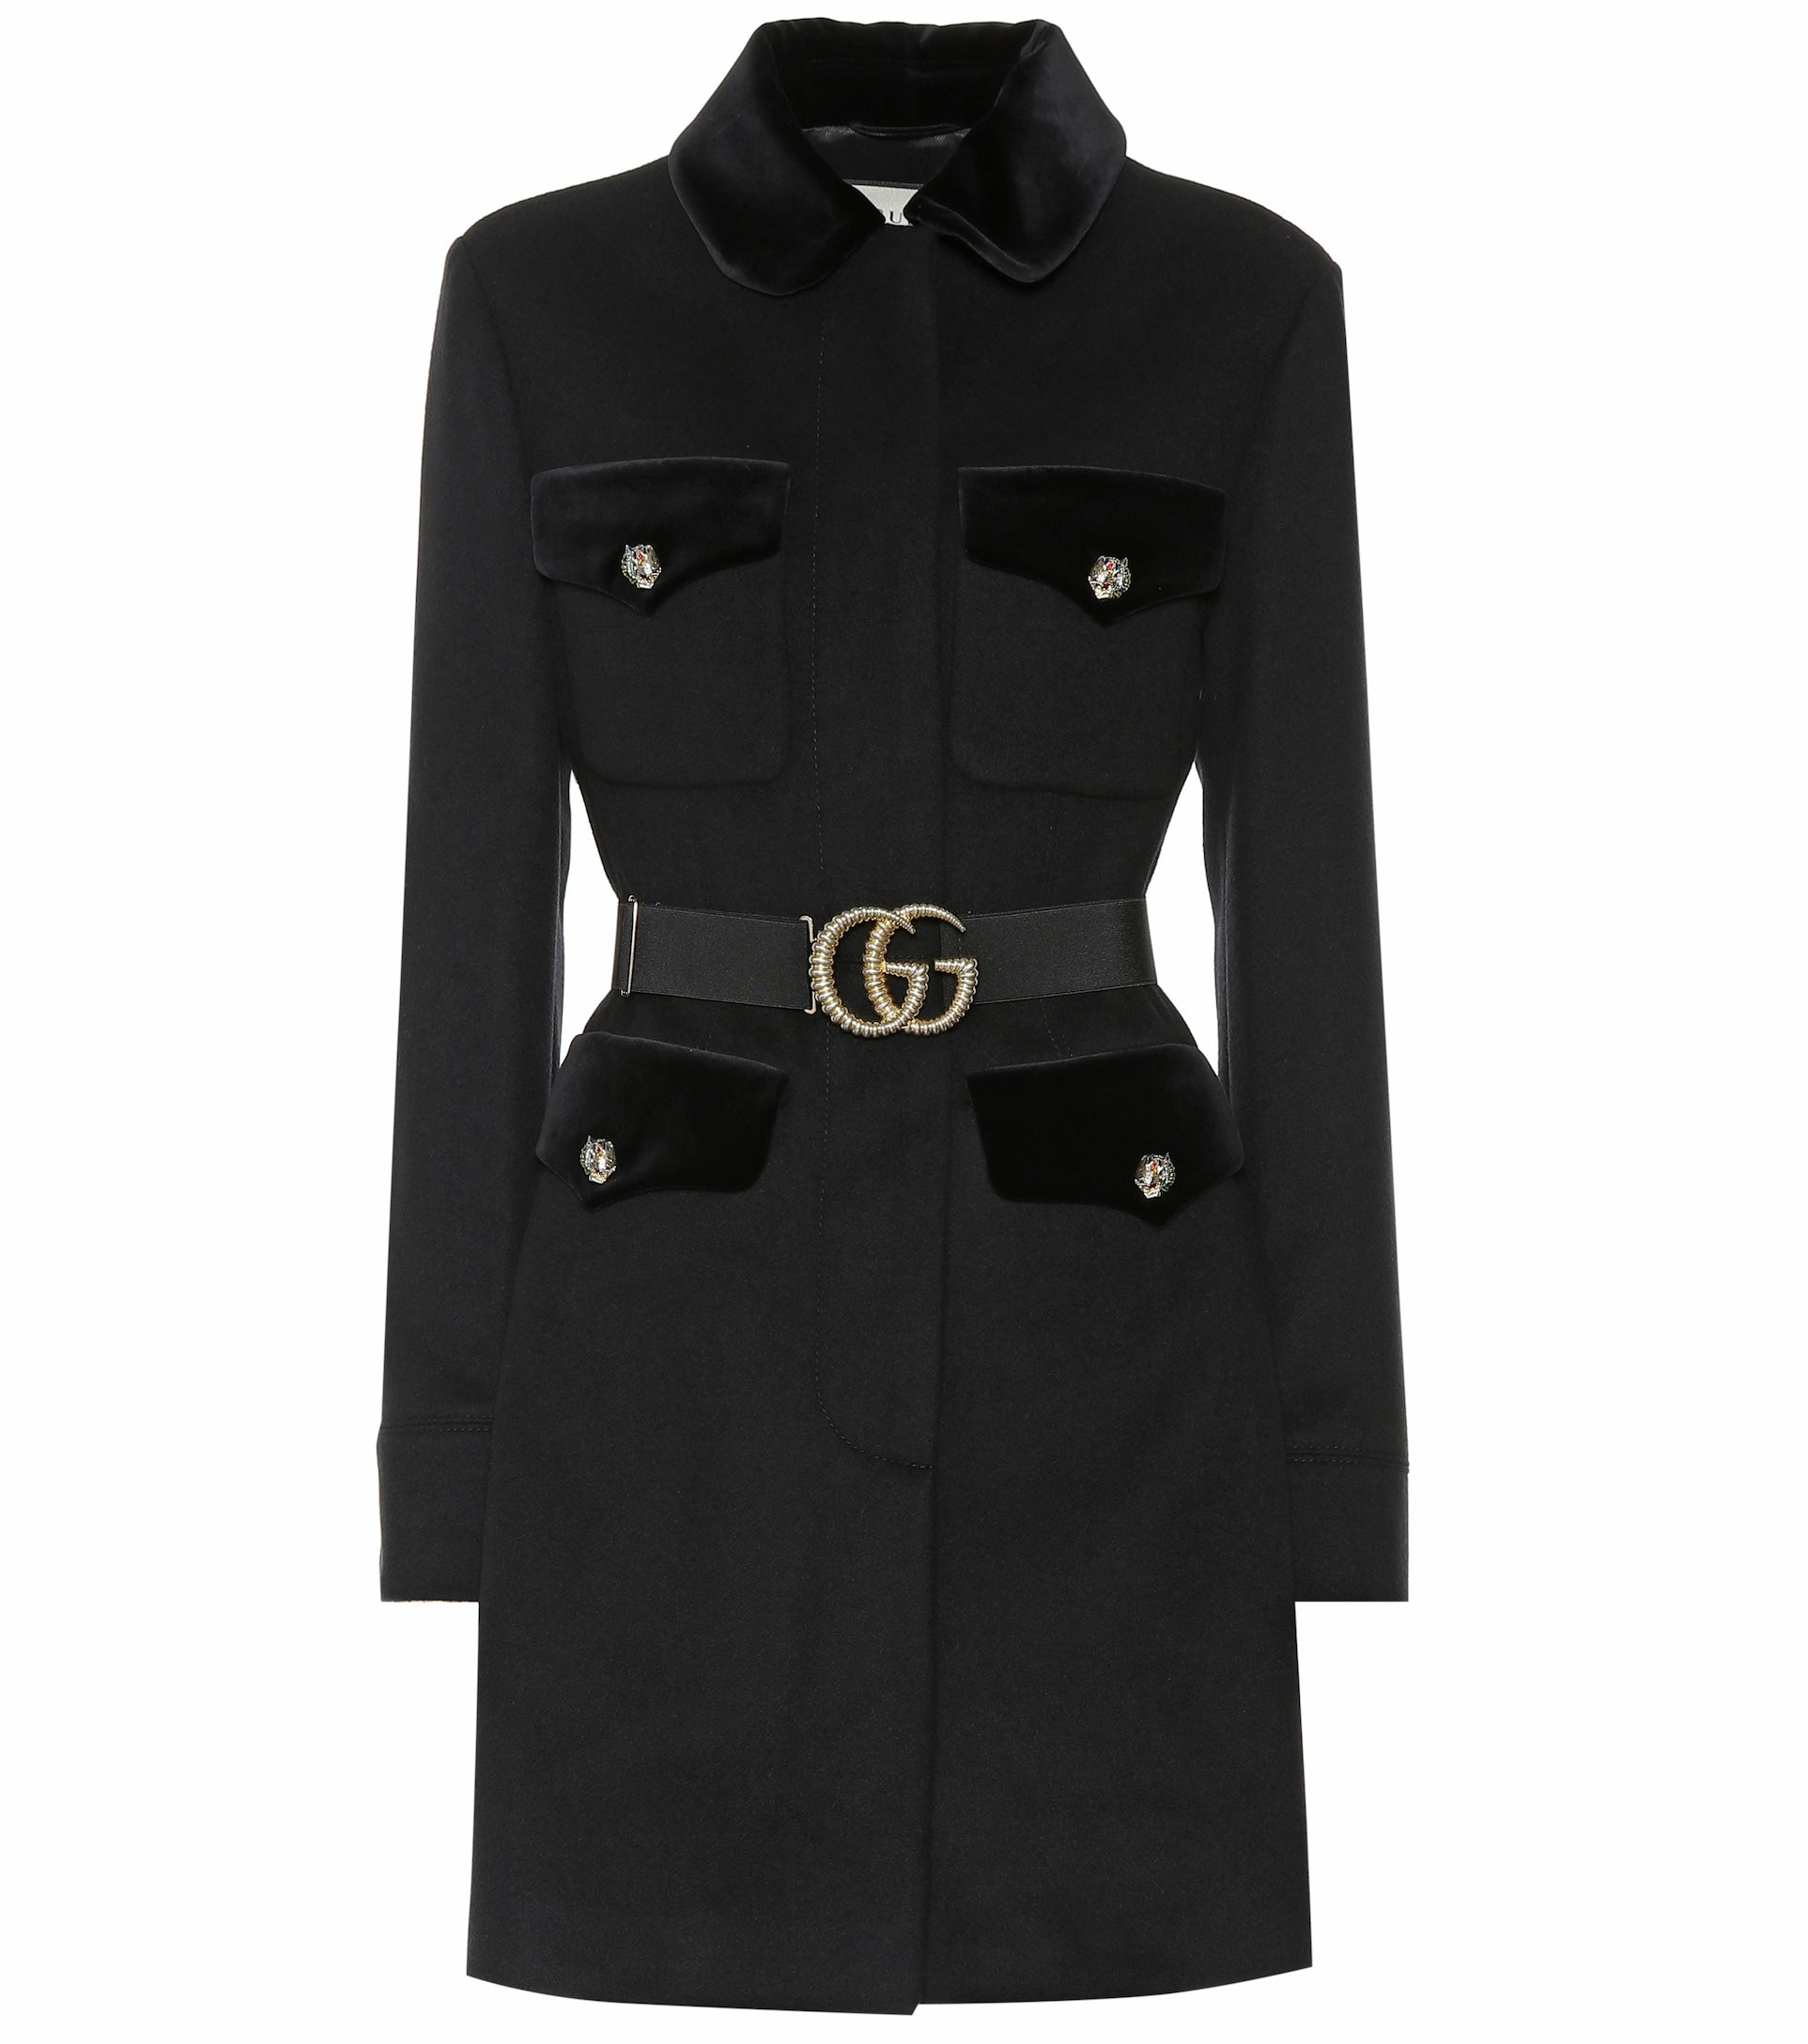 Gucci - Black coat envy Embellished wool-blend capsule wardrobe